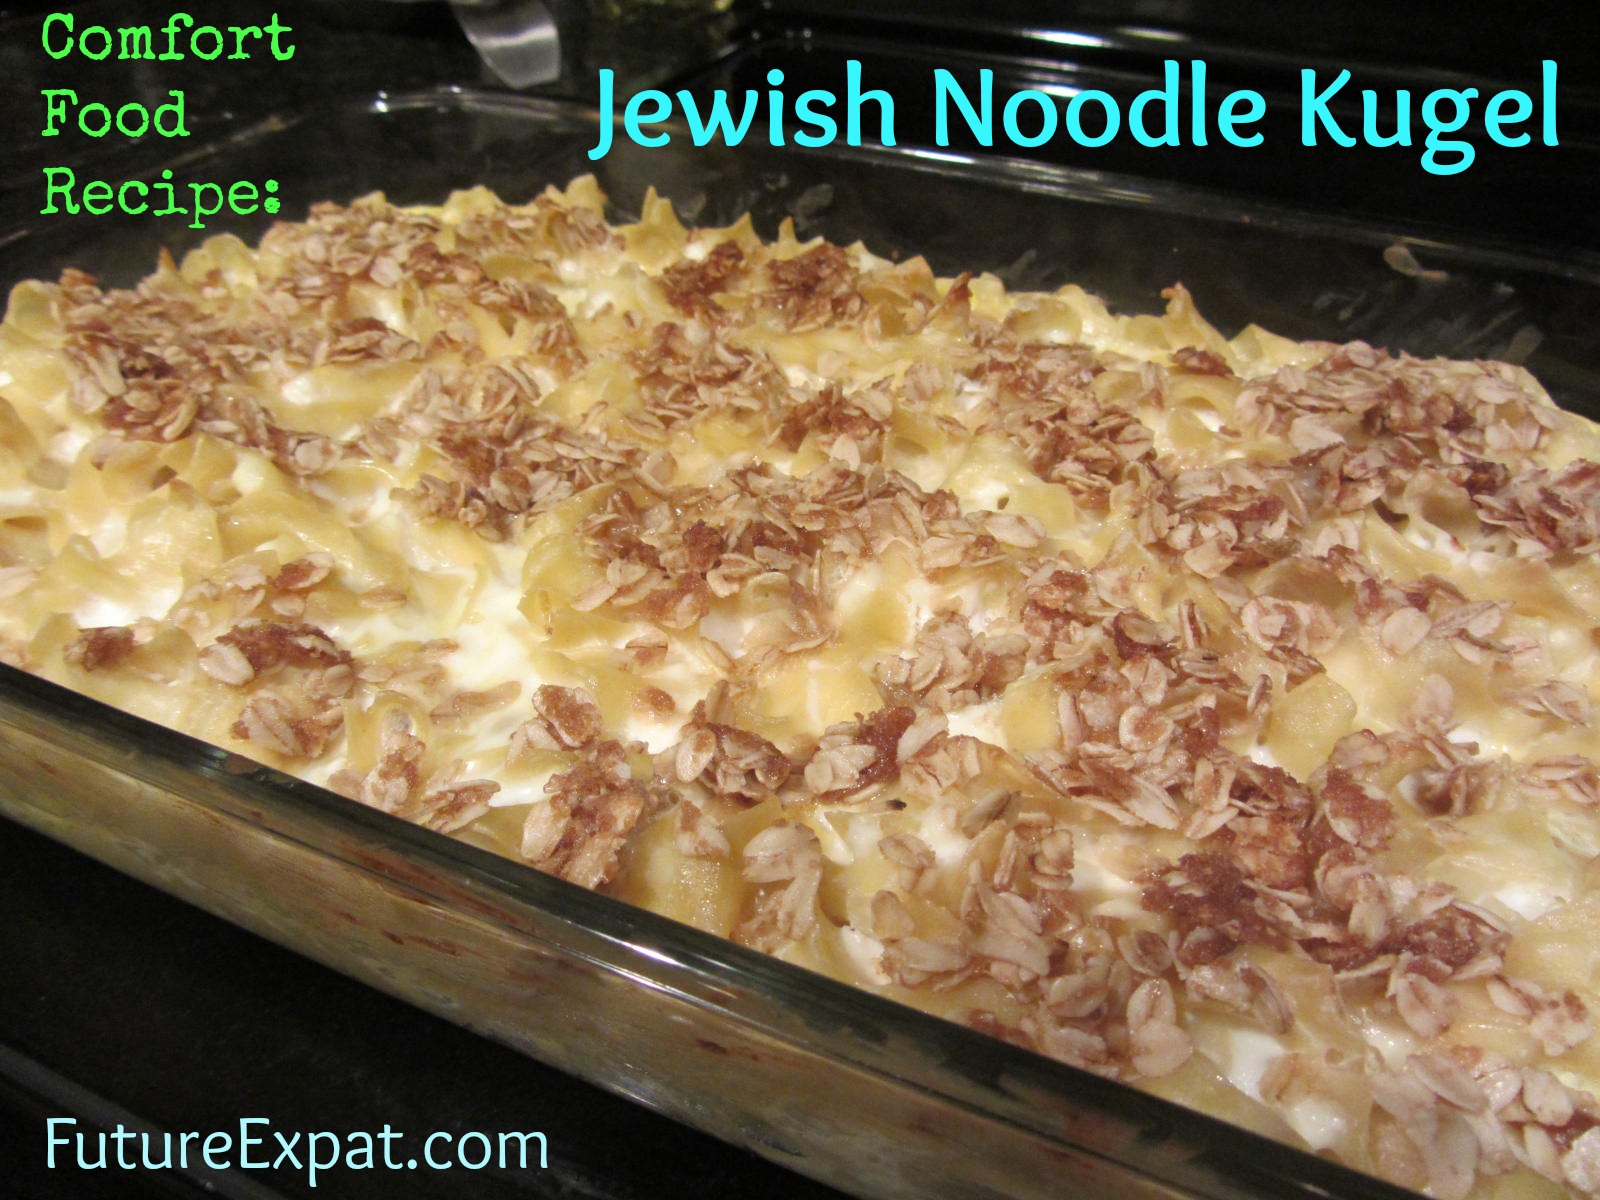 noodle road Recipe Jewish Expat Kugel Comfort Future Noodle  Food: